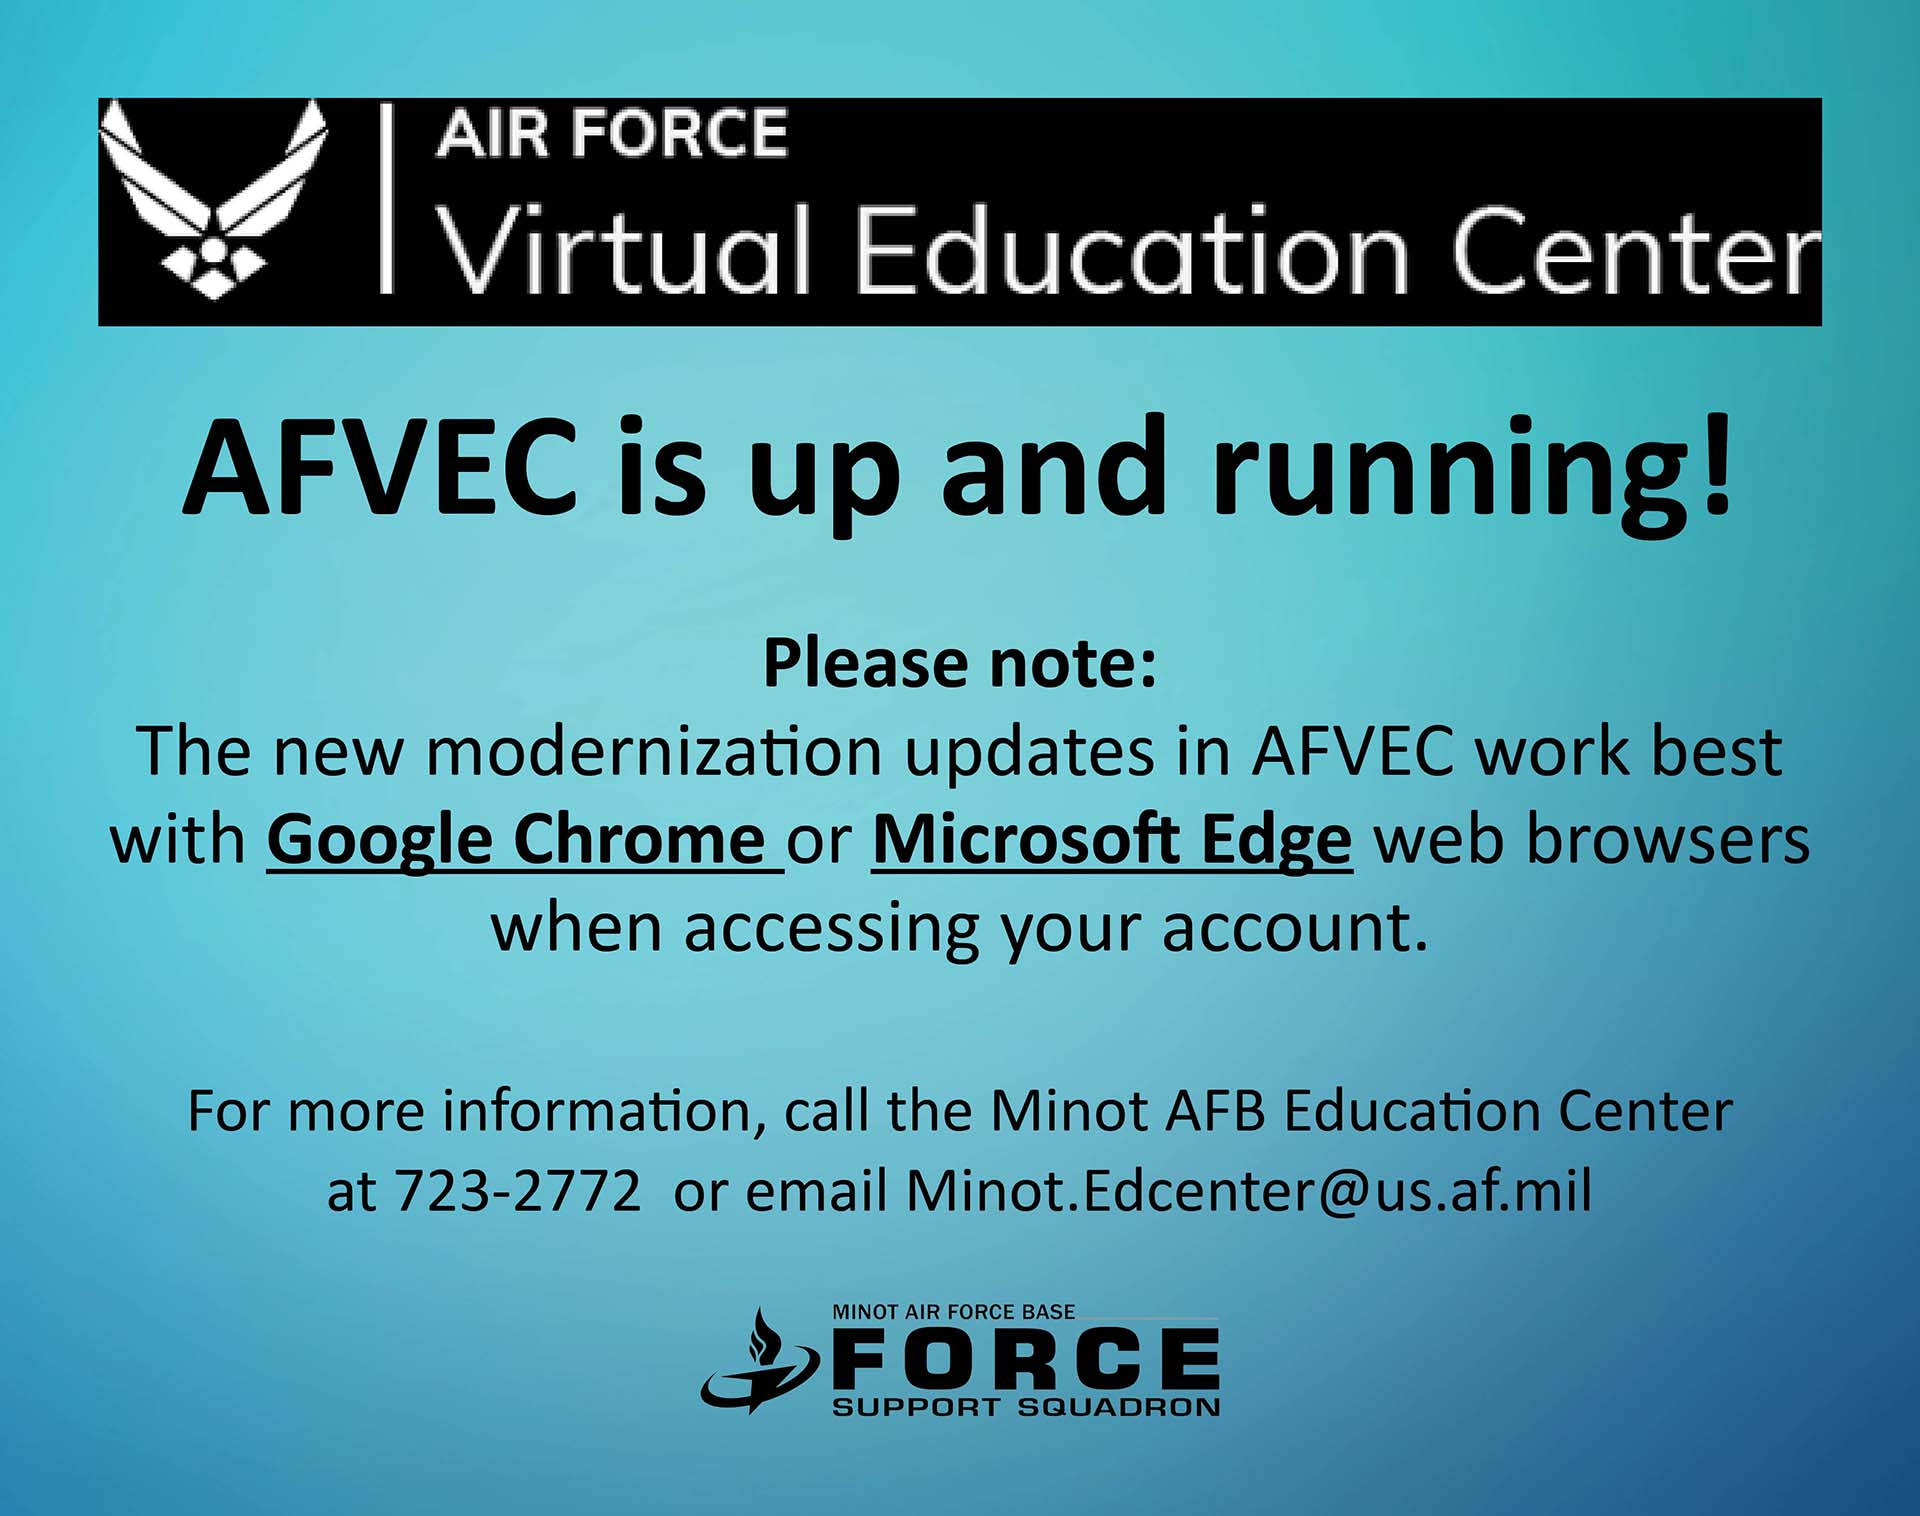 Education Center - AFVEC